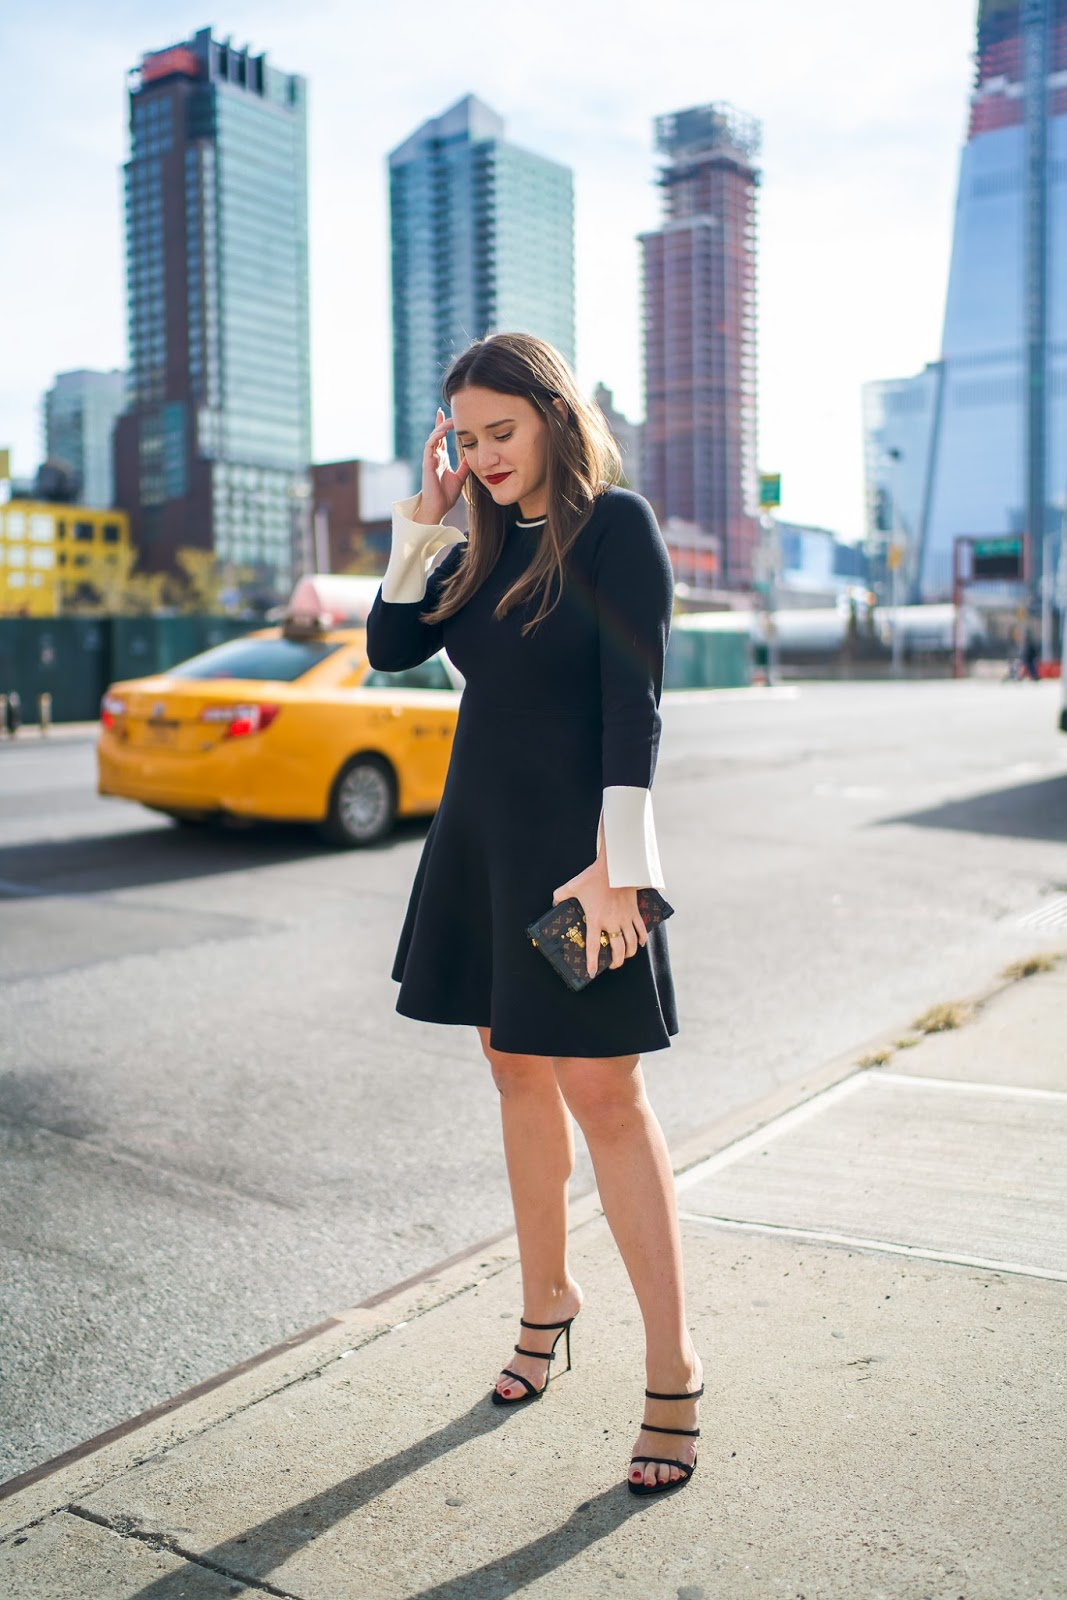 http://www.coveringbases.com/2017/11/vince-Camuto-holiday-workwear.html